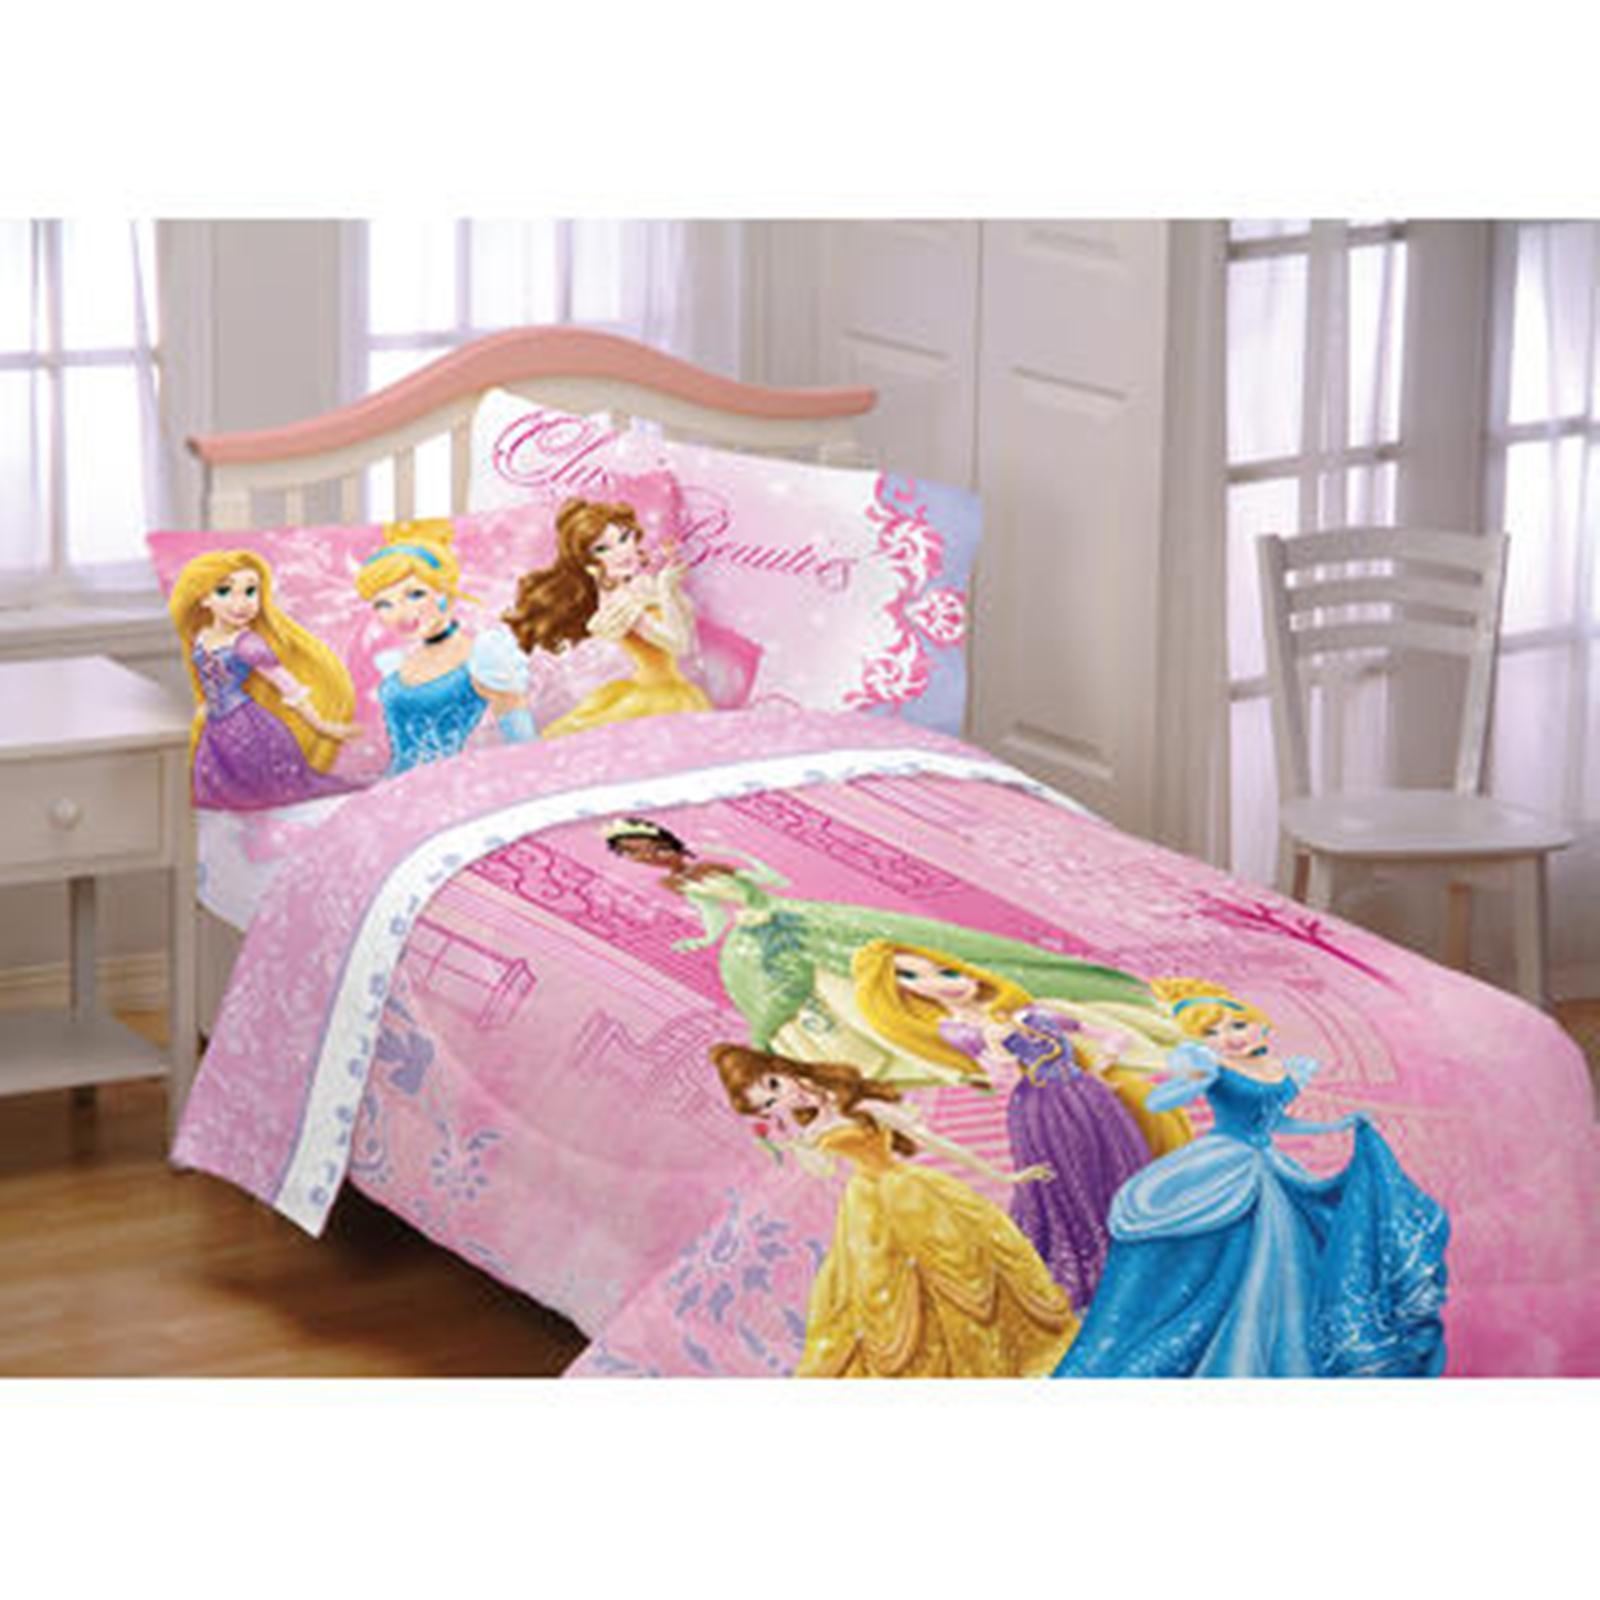 Disney Princess Twin Full forter Home Bed & Bath Bedding